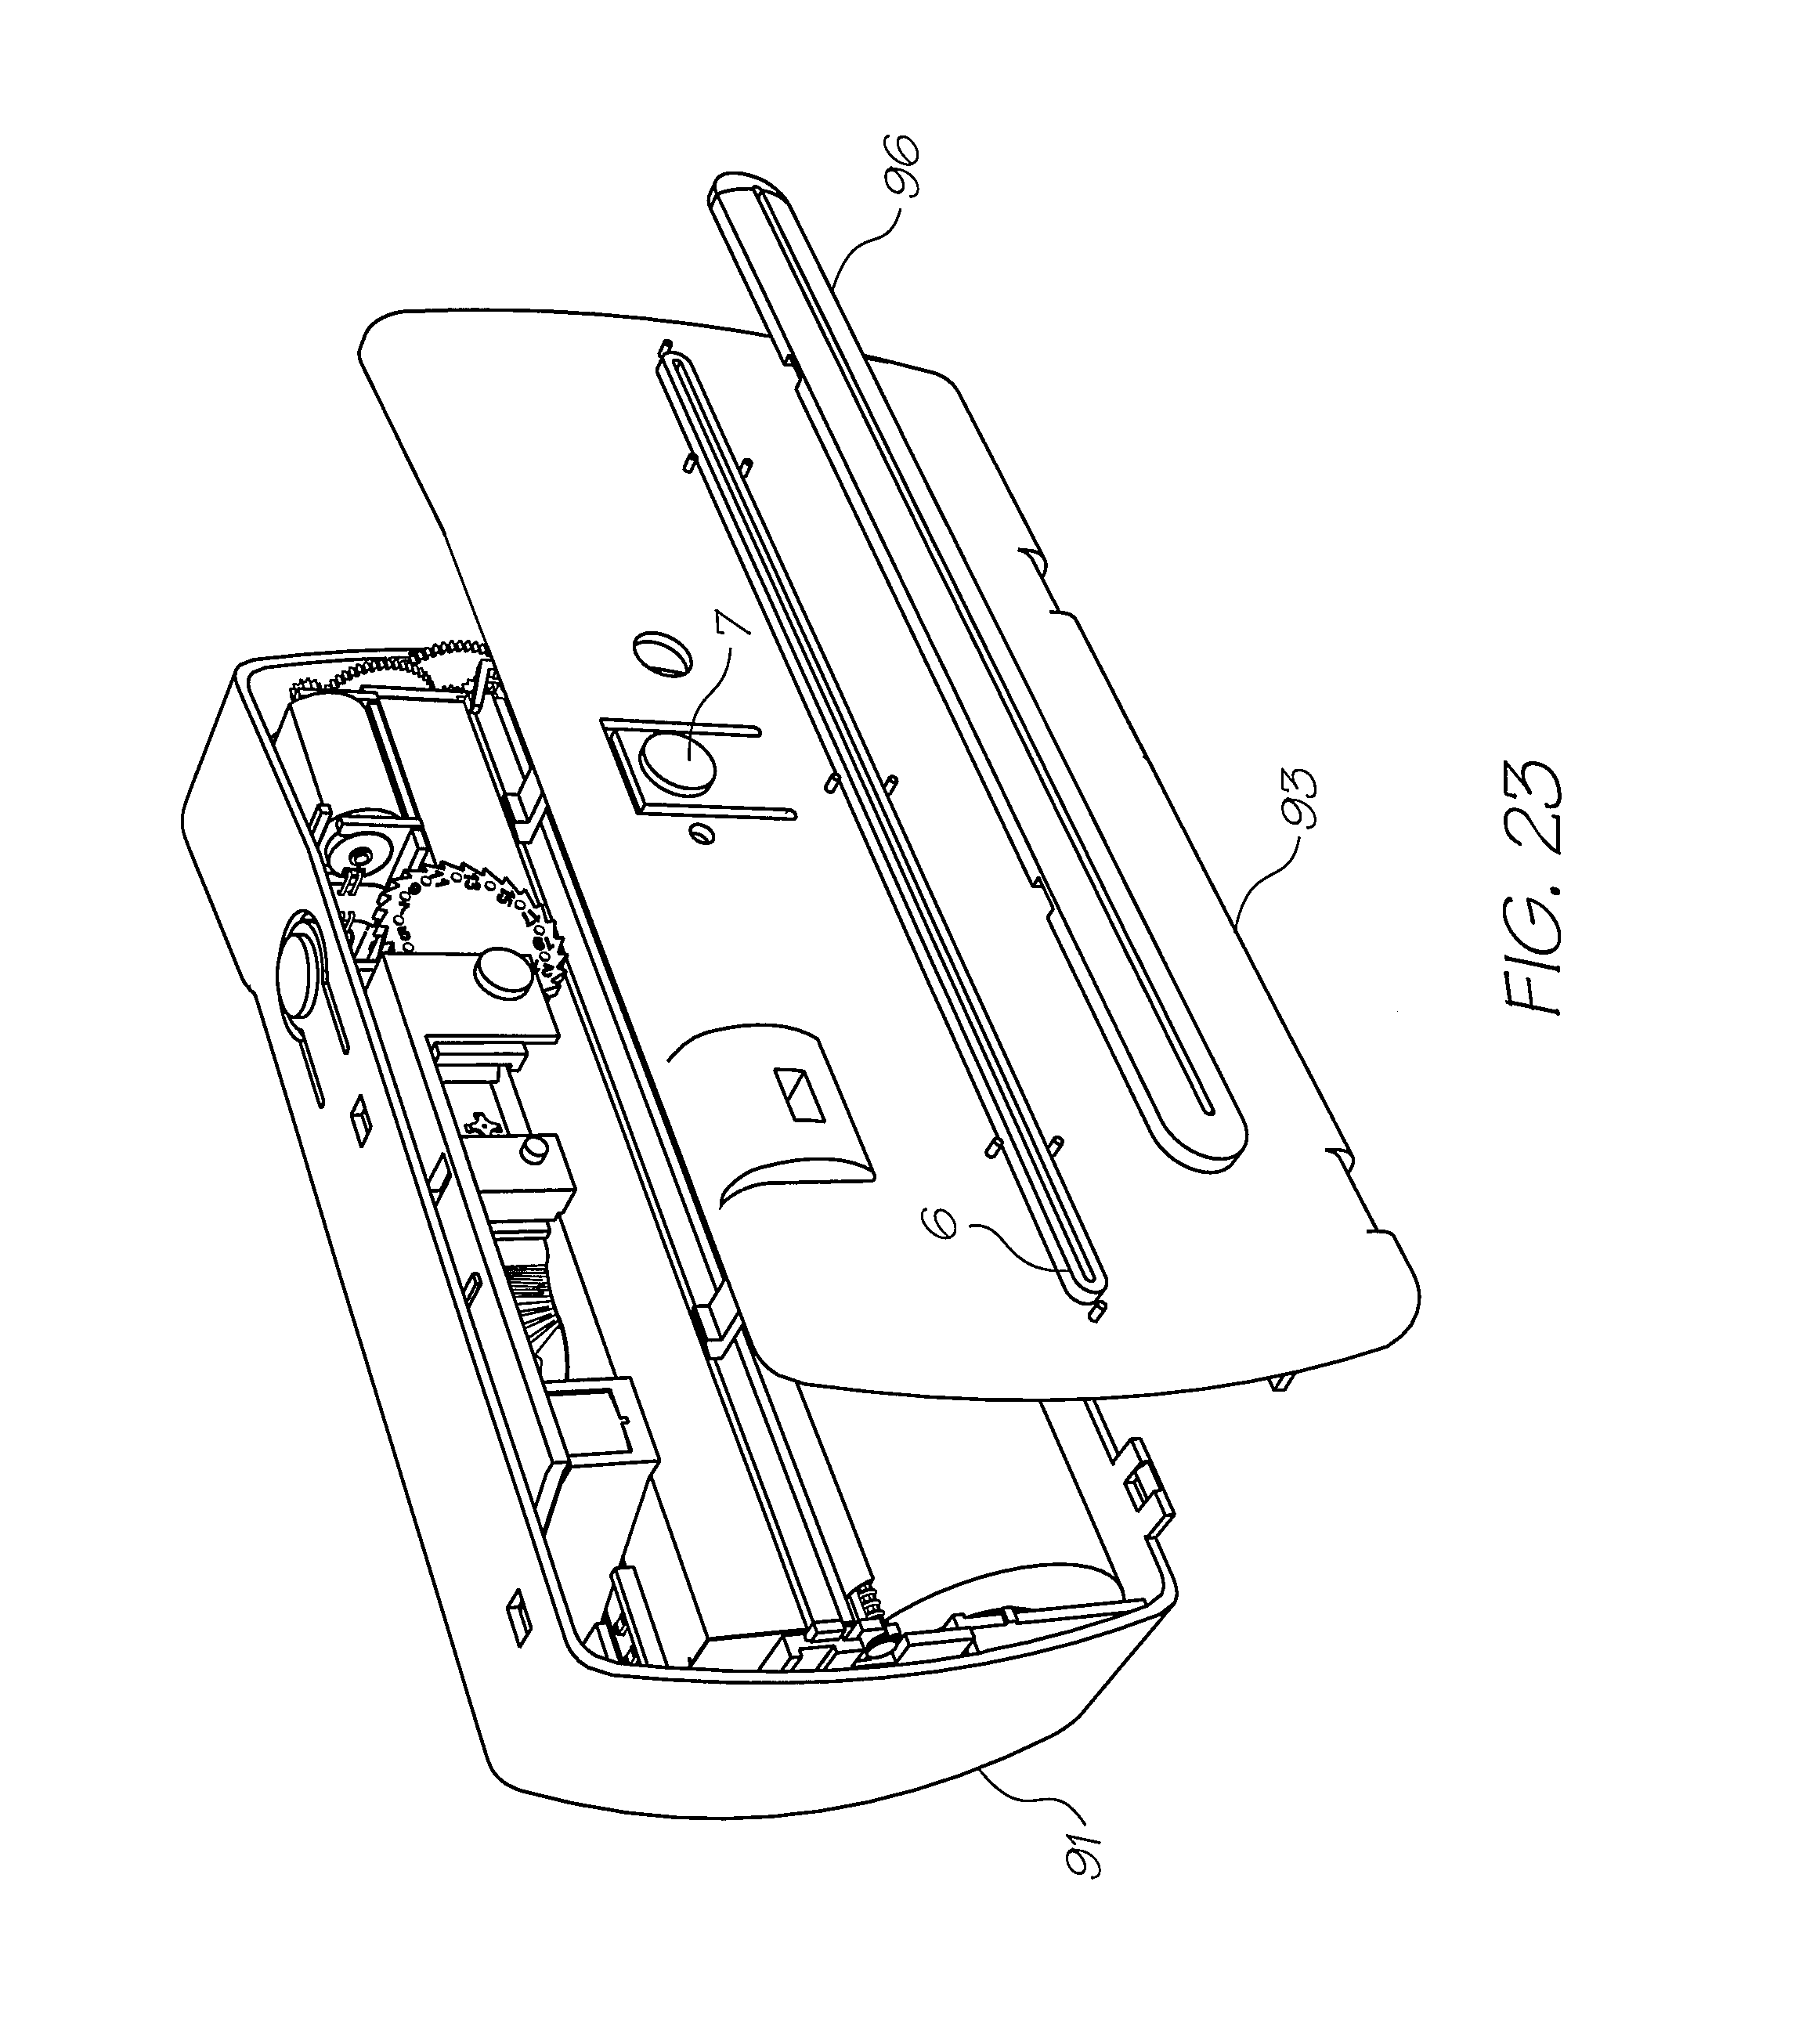 Patent Us 8908075 B2 Circuits And Magnets Pasport Magnetic Field Sensor 0 Petitions